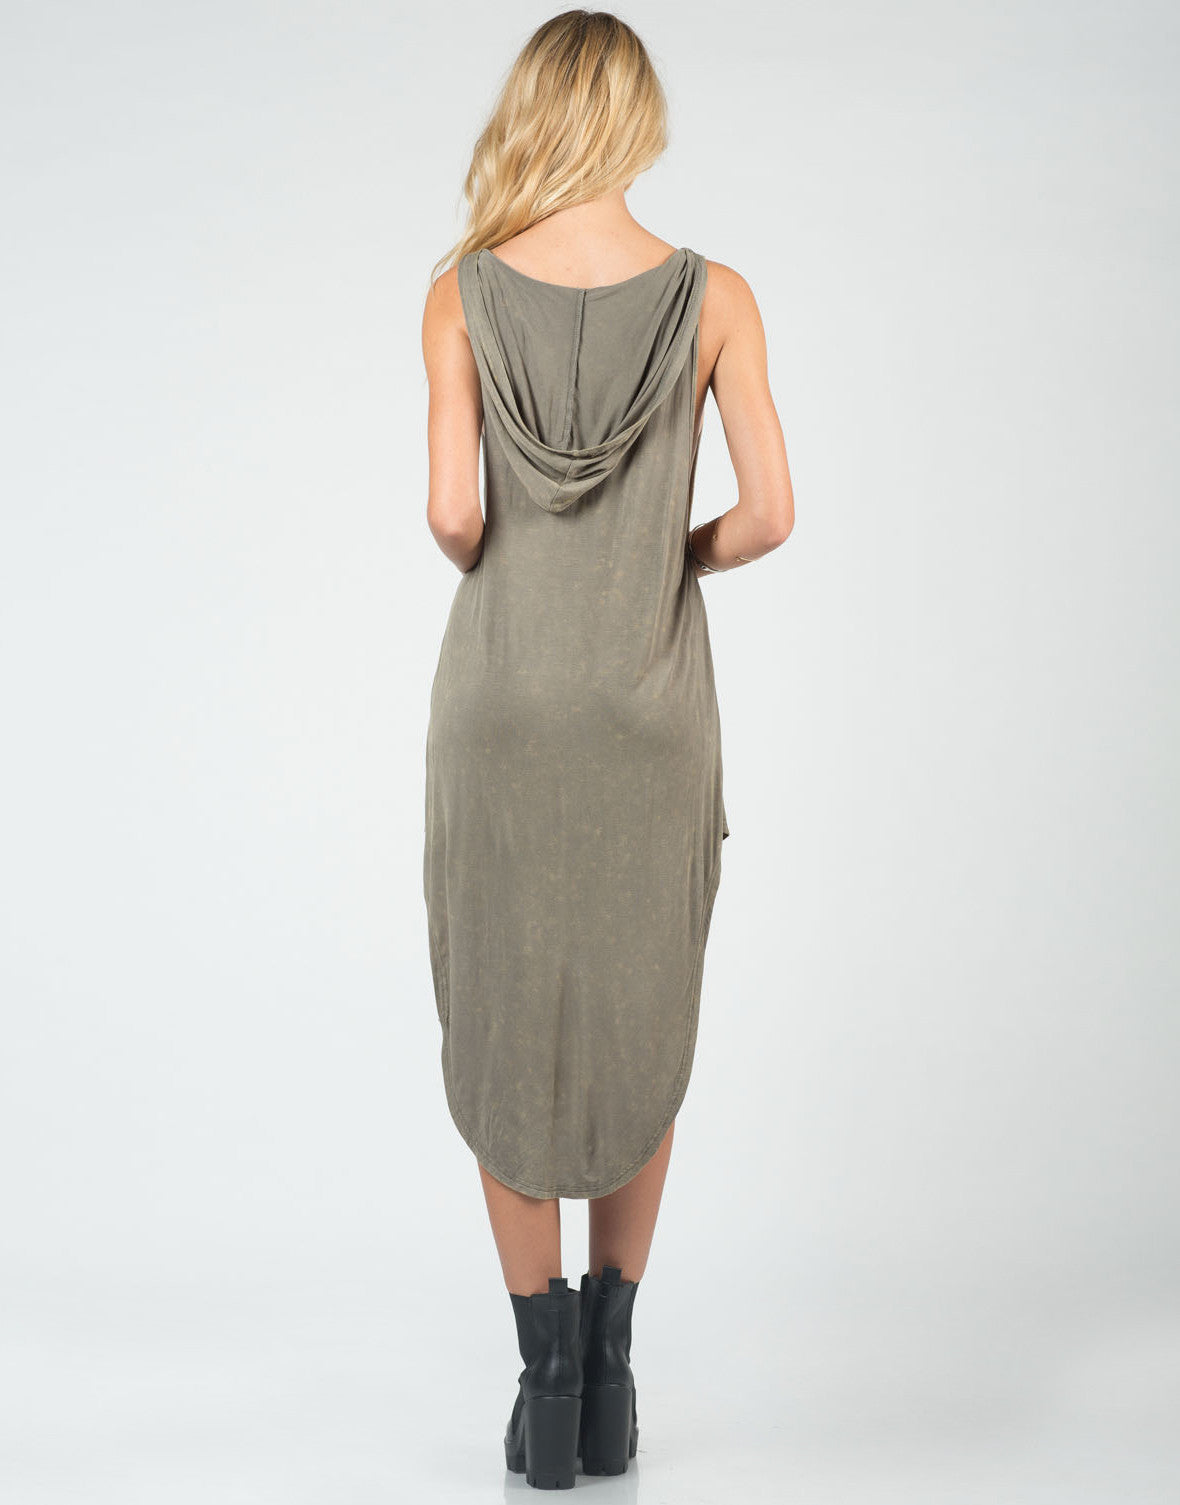 Back View of Hooded Acid Washed Dress